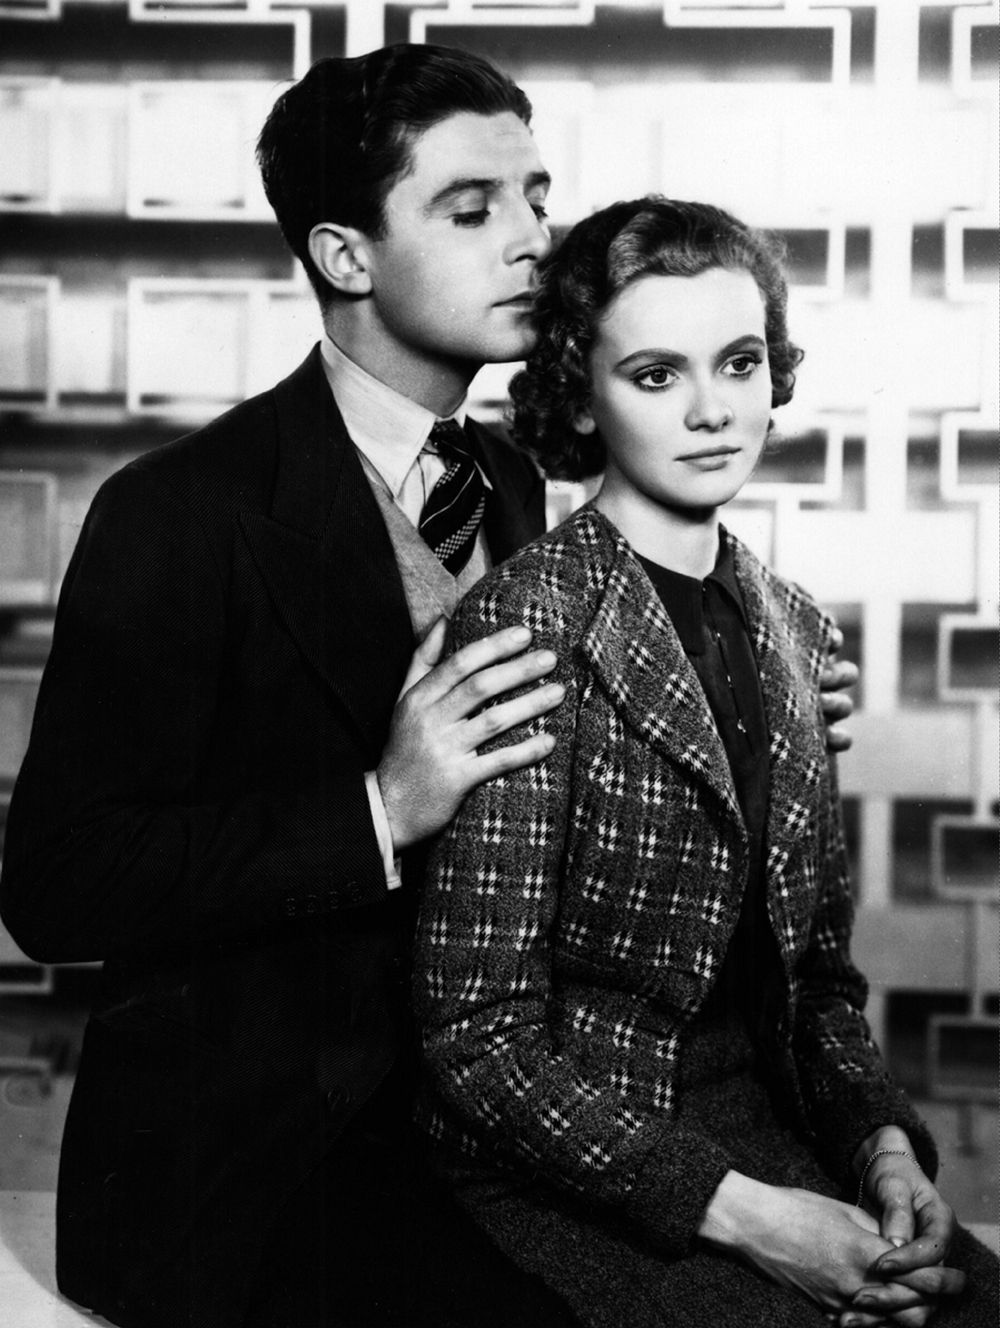 Derrick De Marney and Nova Pilbeam in Young and Innocent (1937, dir. Alfred Hitchcock)